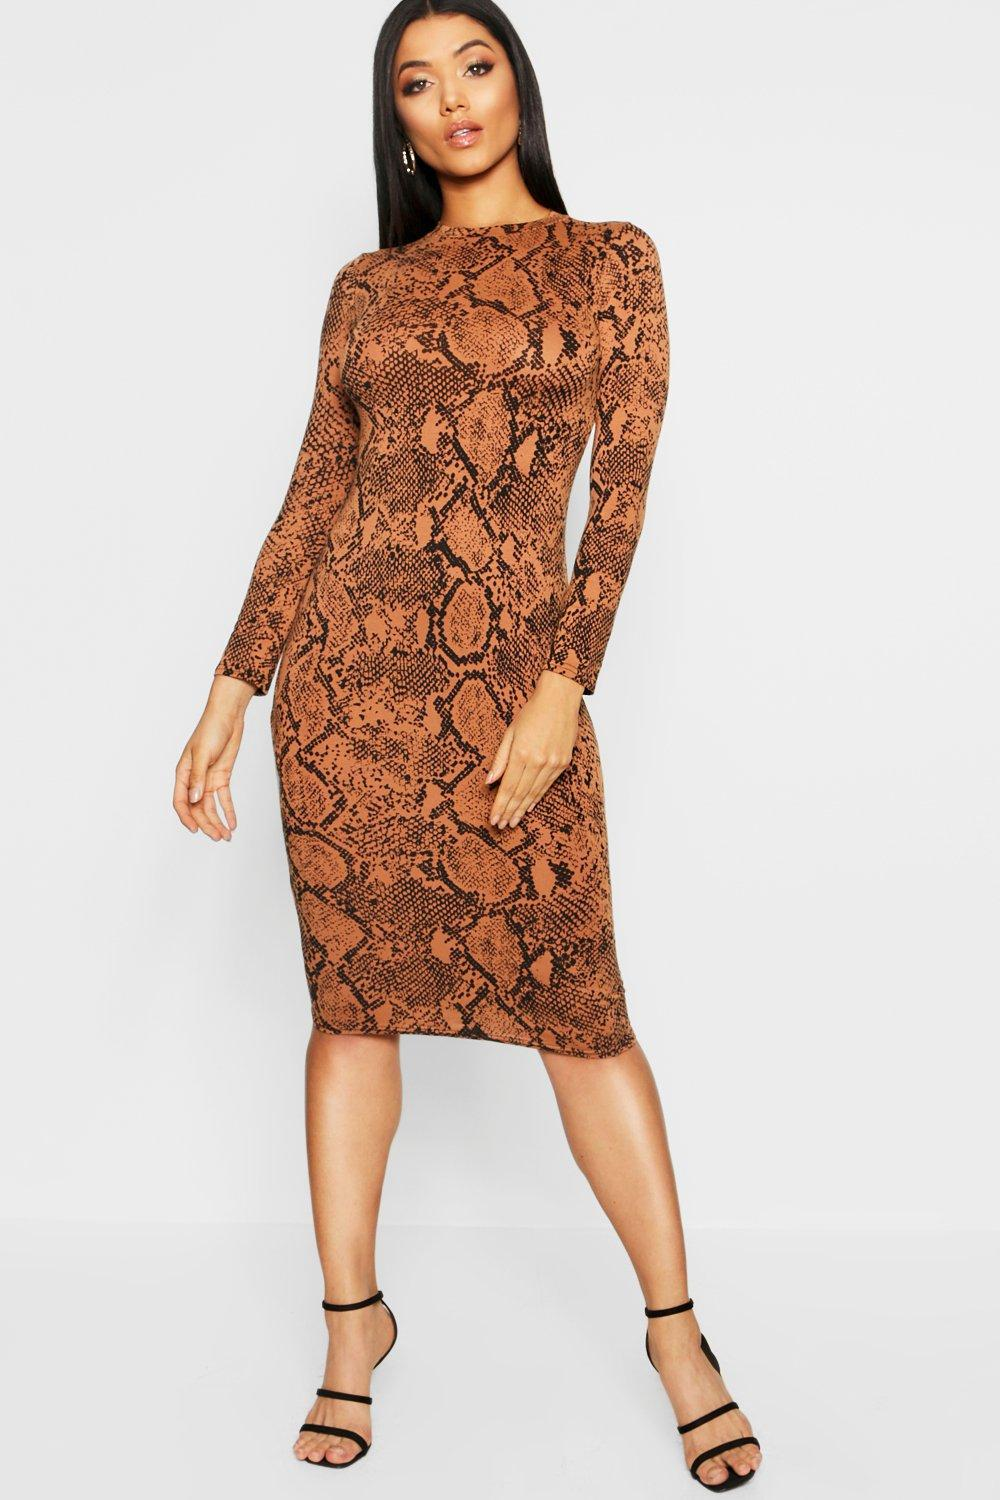 ba748a6820d8 Gallery. Previously sold at: Boohoo · Women's Goho Dresses Women's Keyhole Dresses  Women's Wrap ...